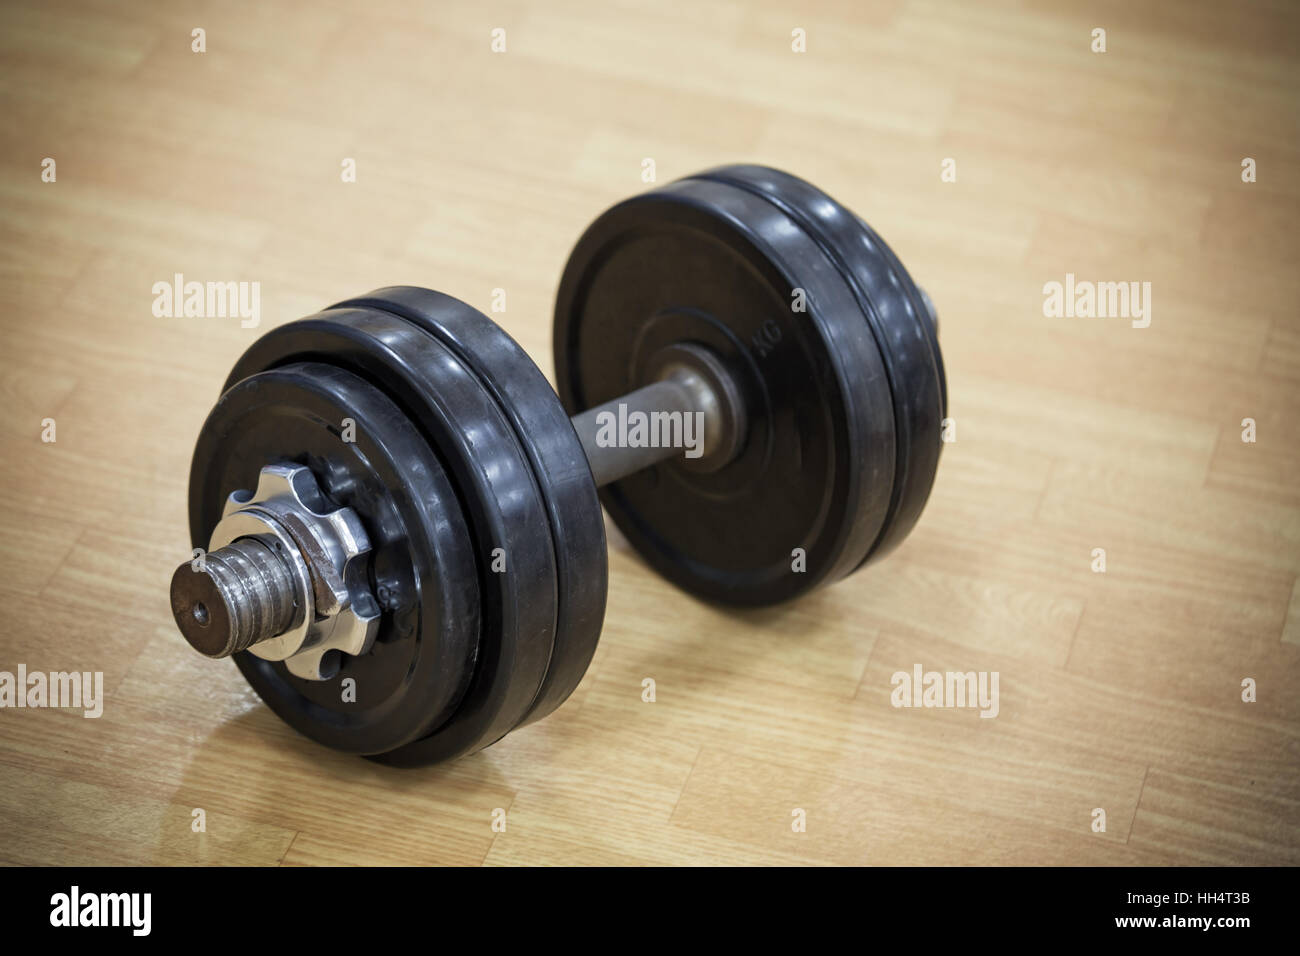 Heavy dumbbell on floor of the gym - Stock Image